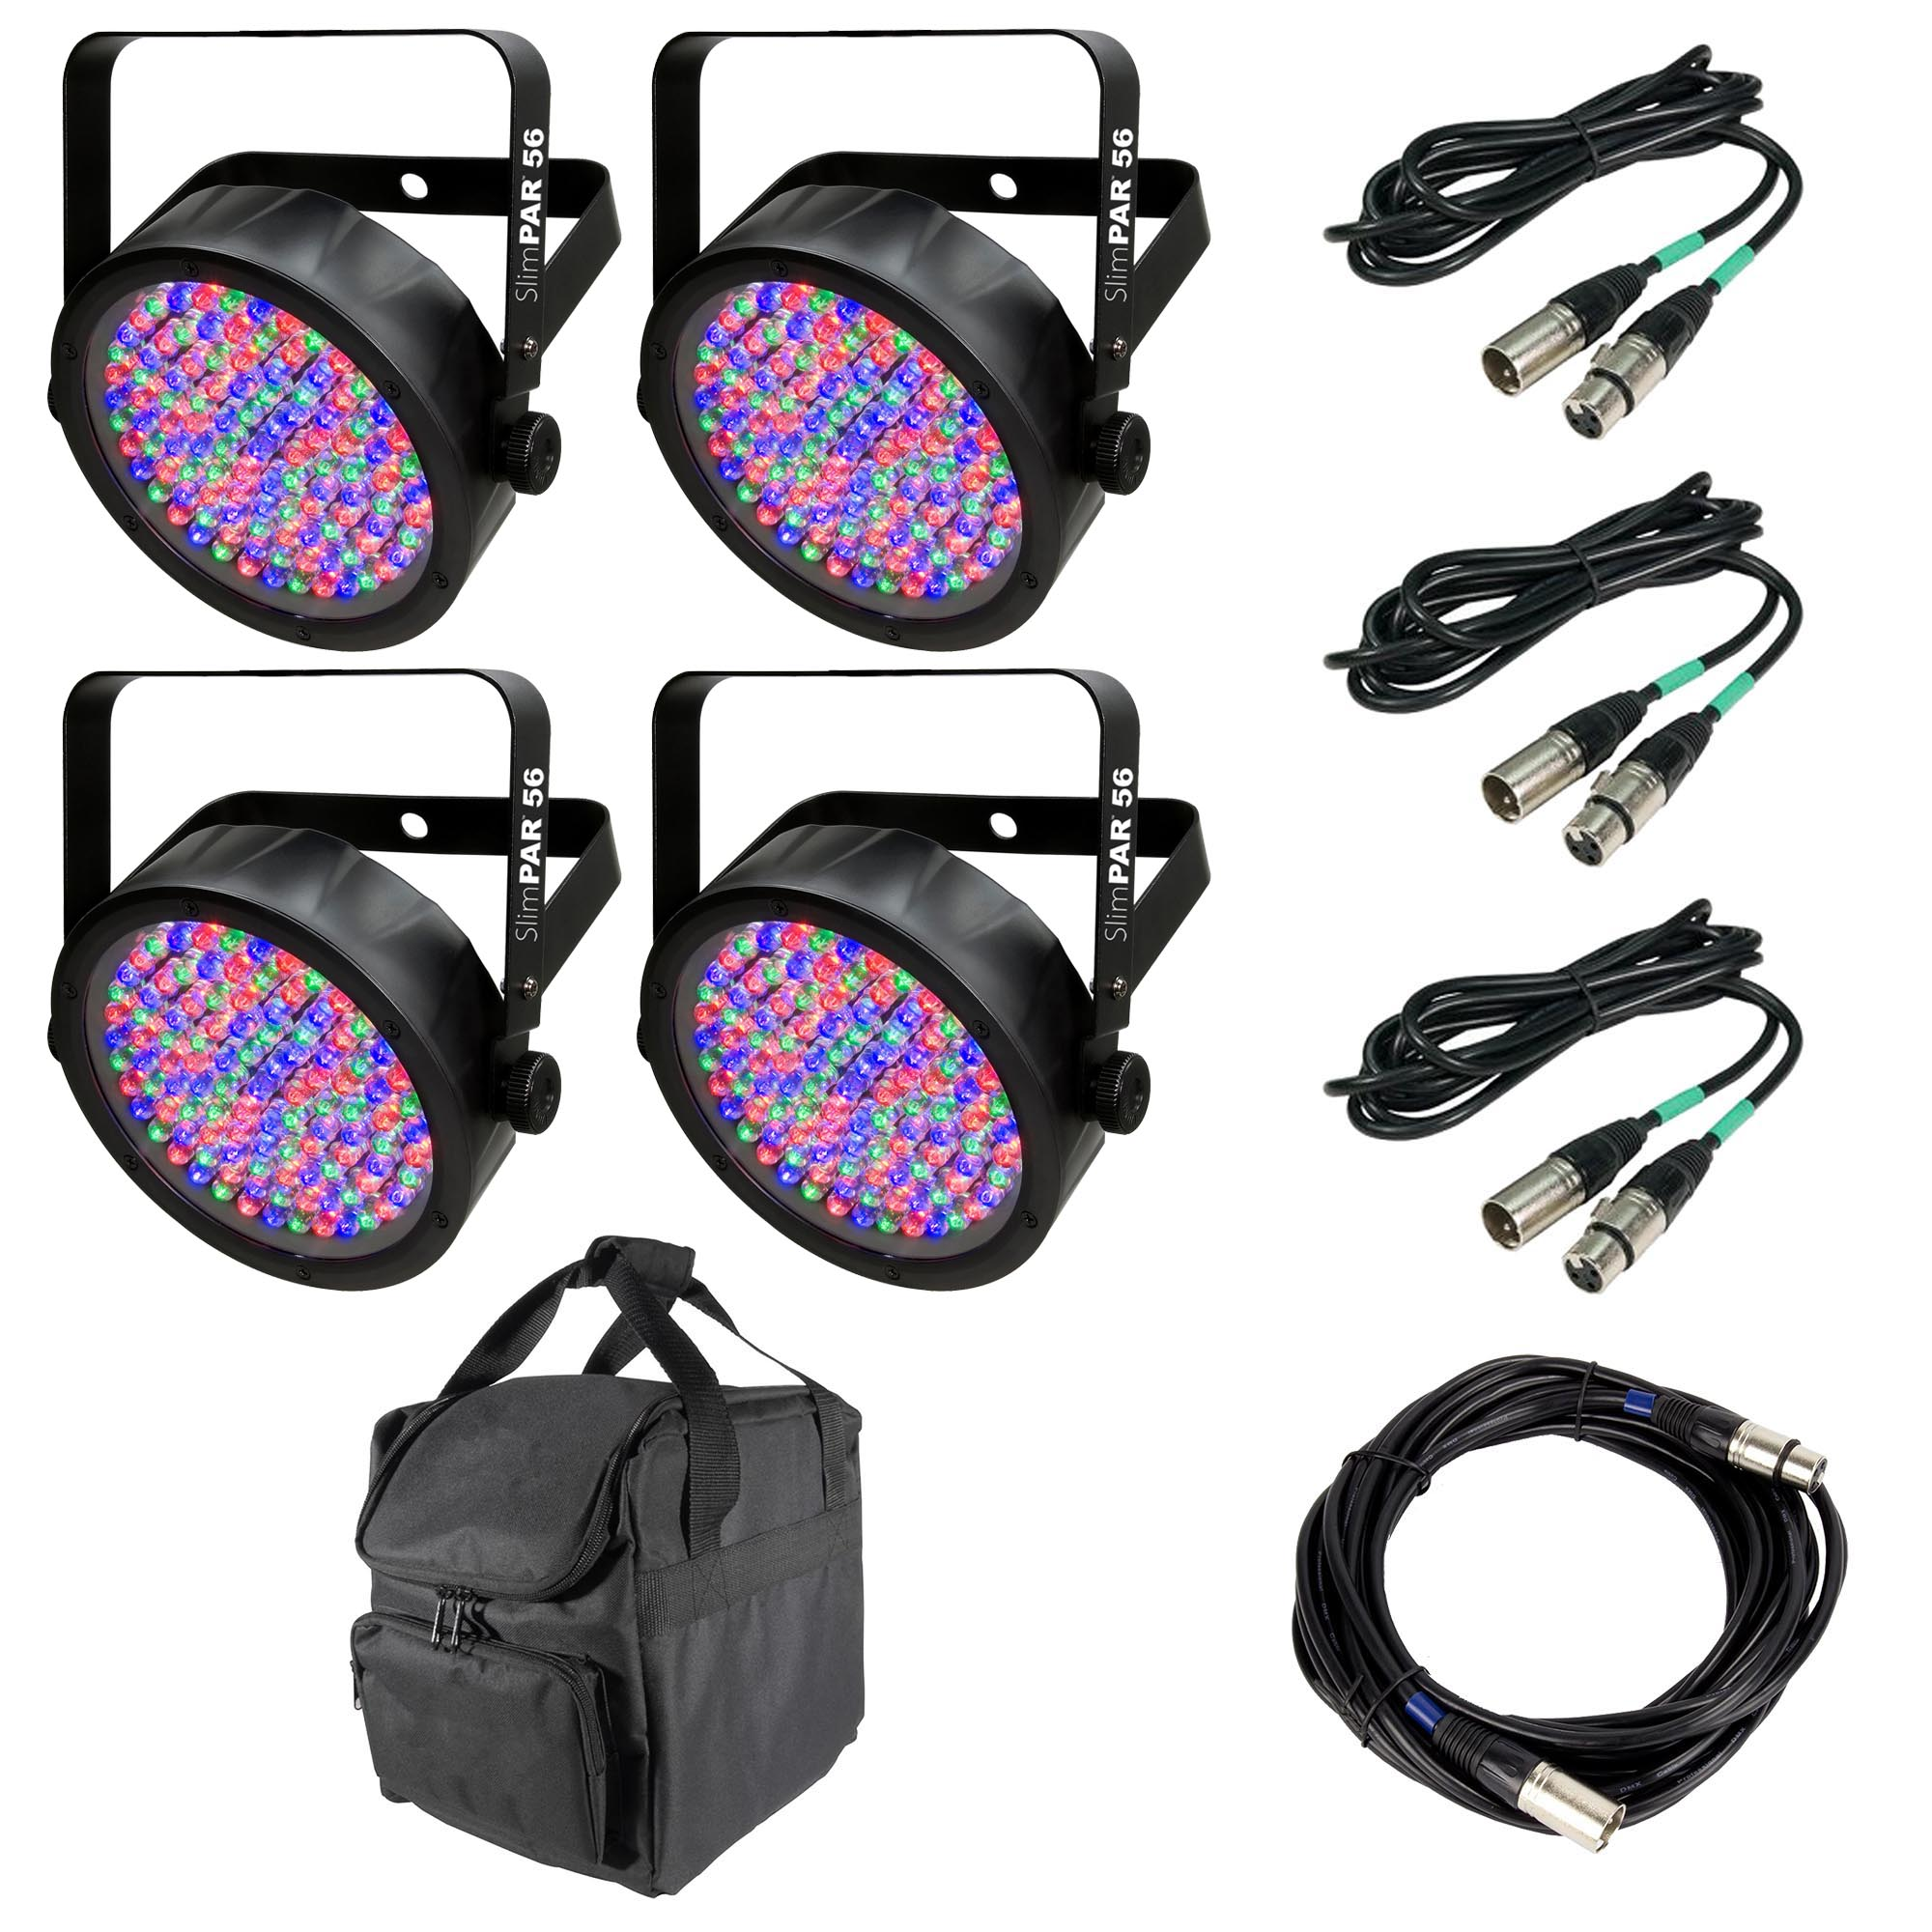 Chauvet SlimPar 56 LED Light (4) + 25' DMX Cable + 10' DMX Cable (3) + Carry Bag